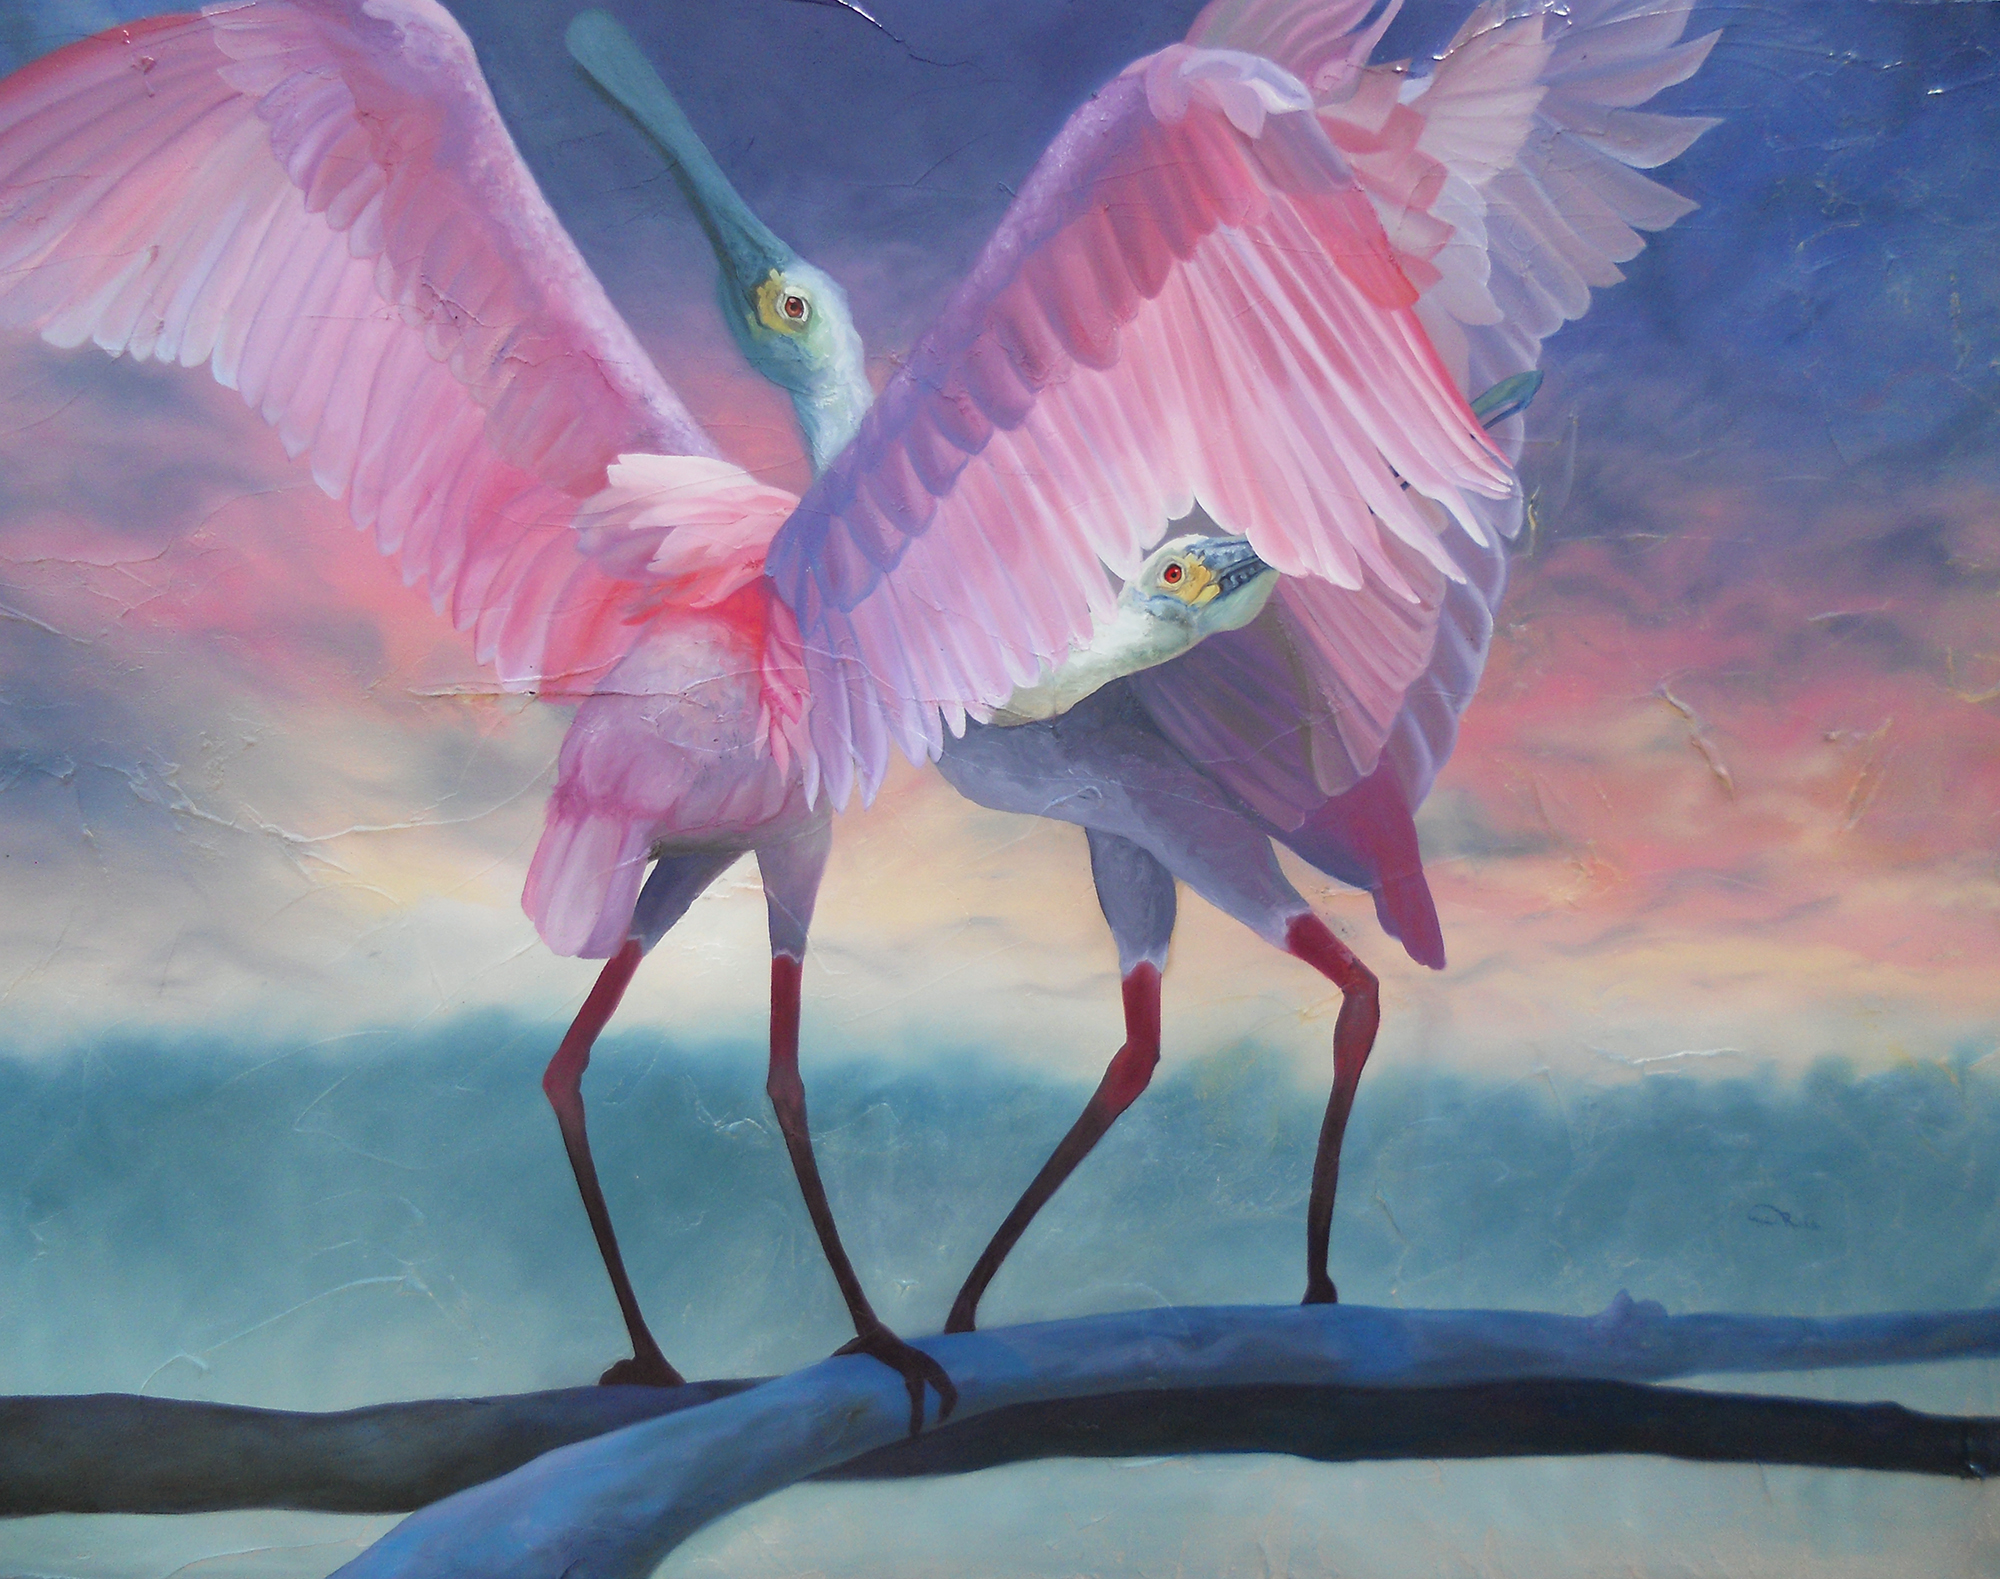 """""""Private Chatter"""" - Roseate Spoonbills Speaking with Exaggerated Posturing - an oil painting original artwork by professional artist Allison Richter"""